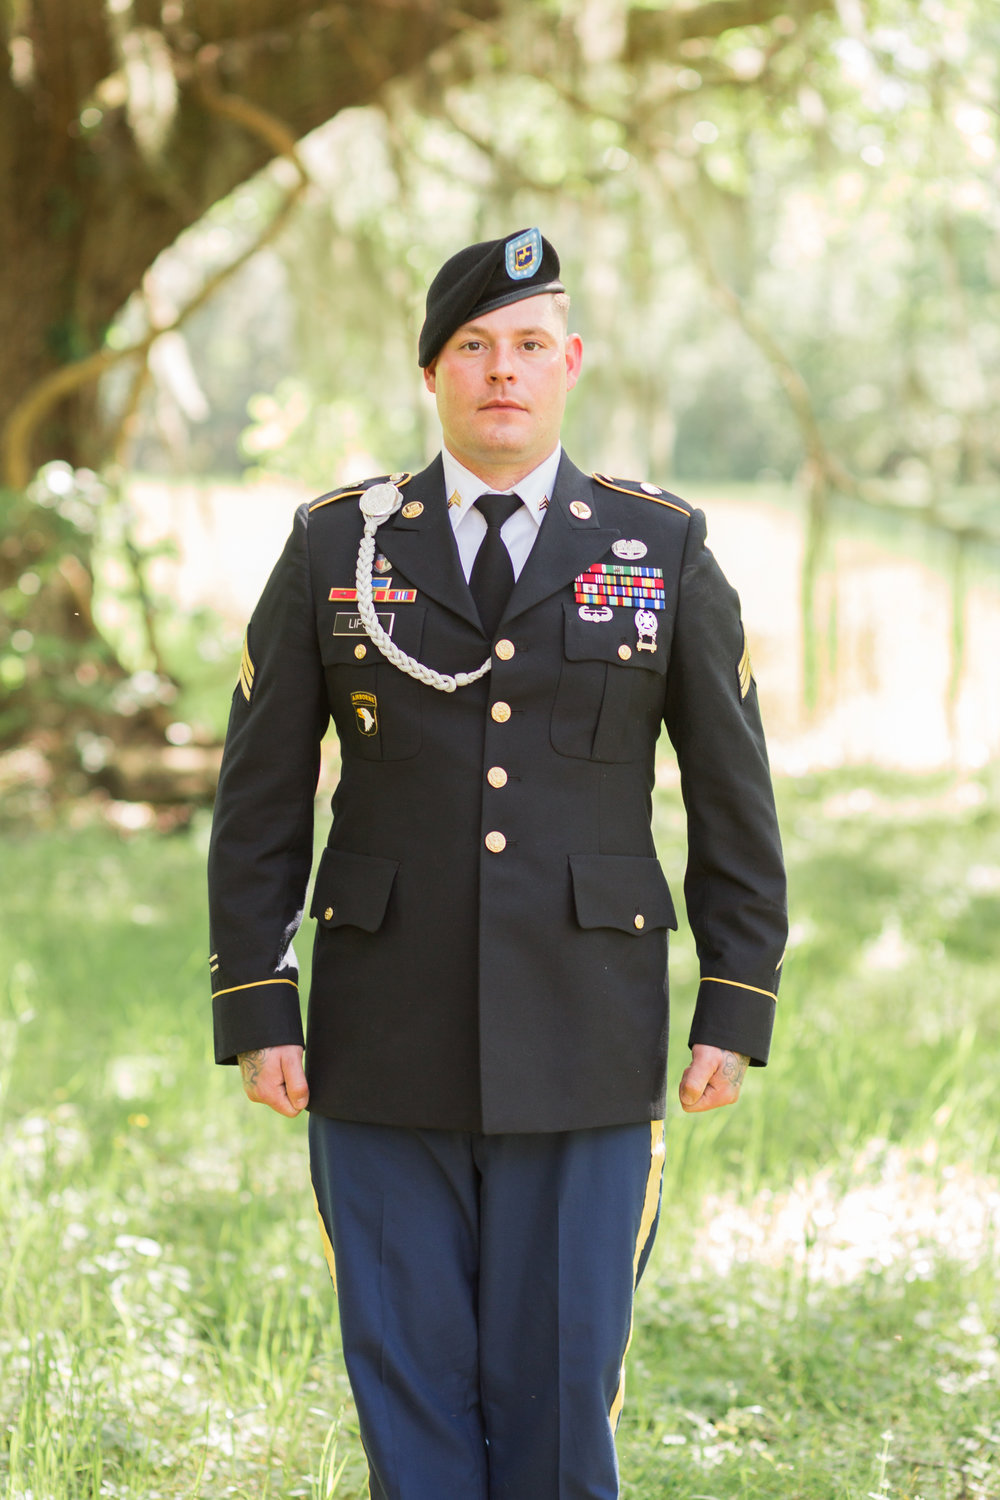 Bronze star recipient Adam Lipski in his military uniform for his Savannah GA wedding